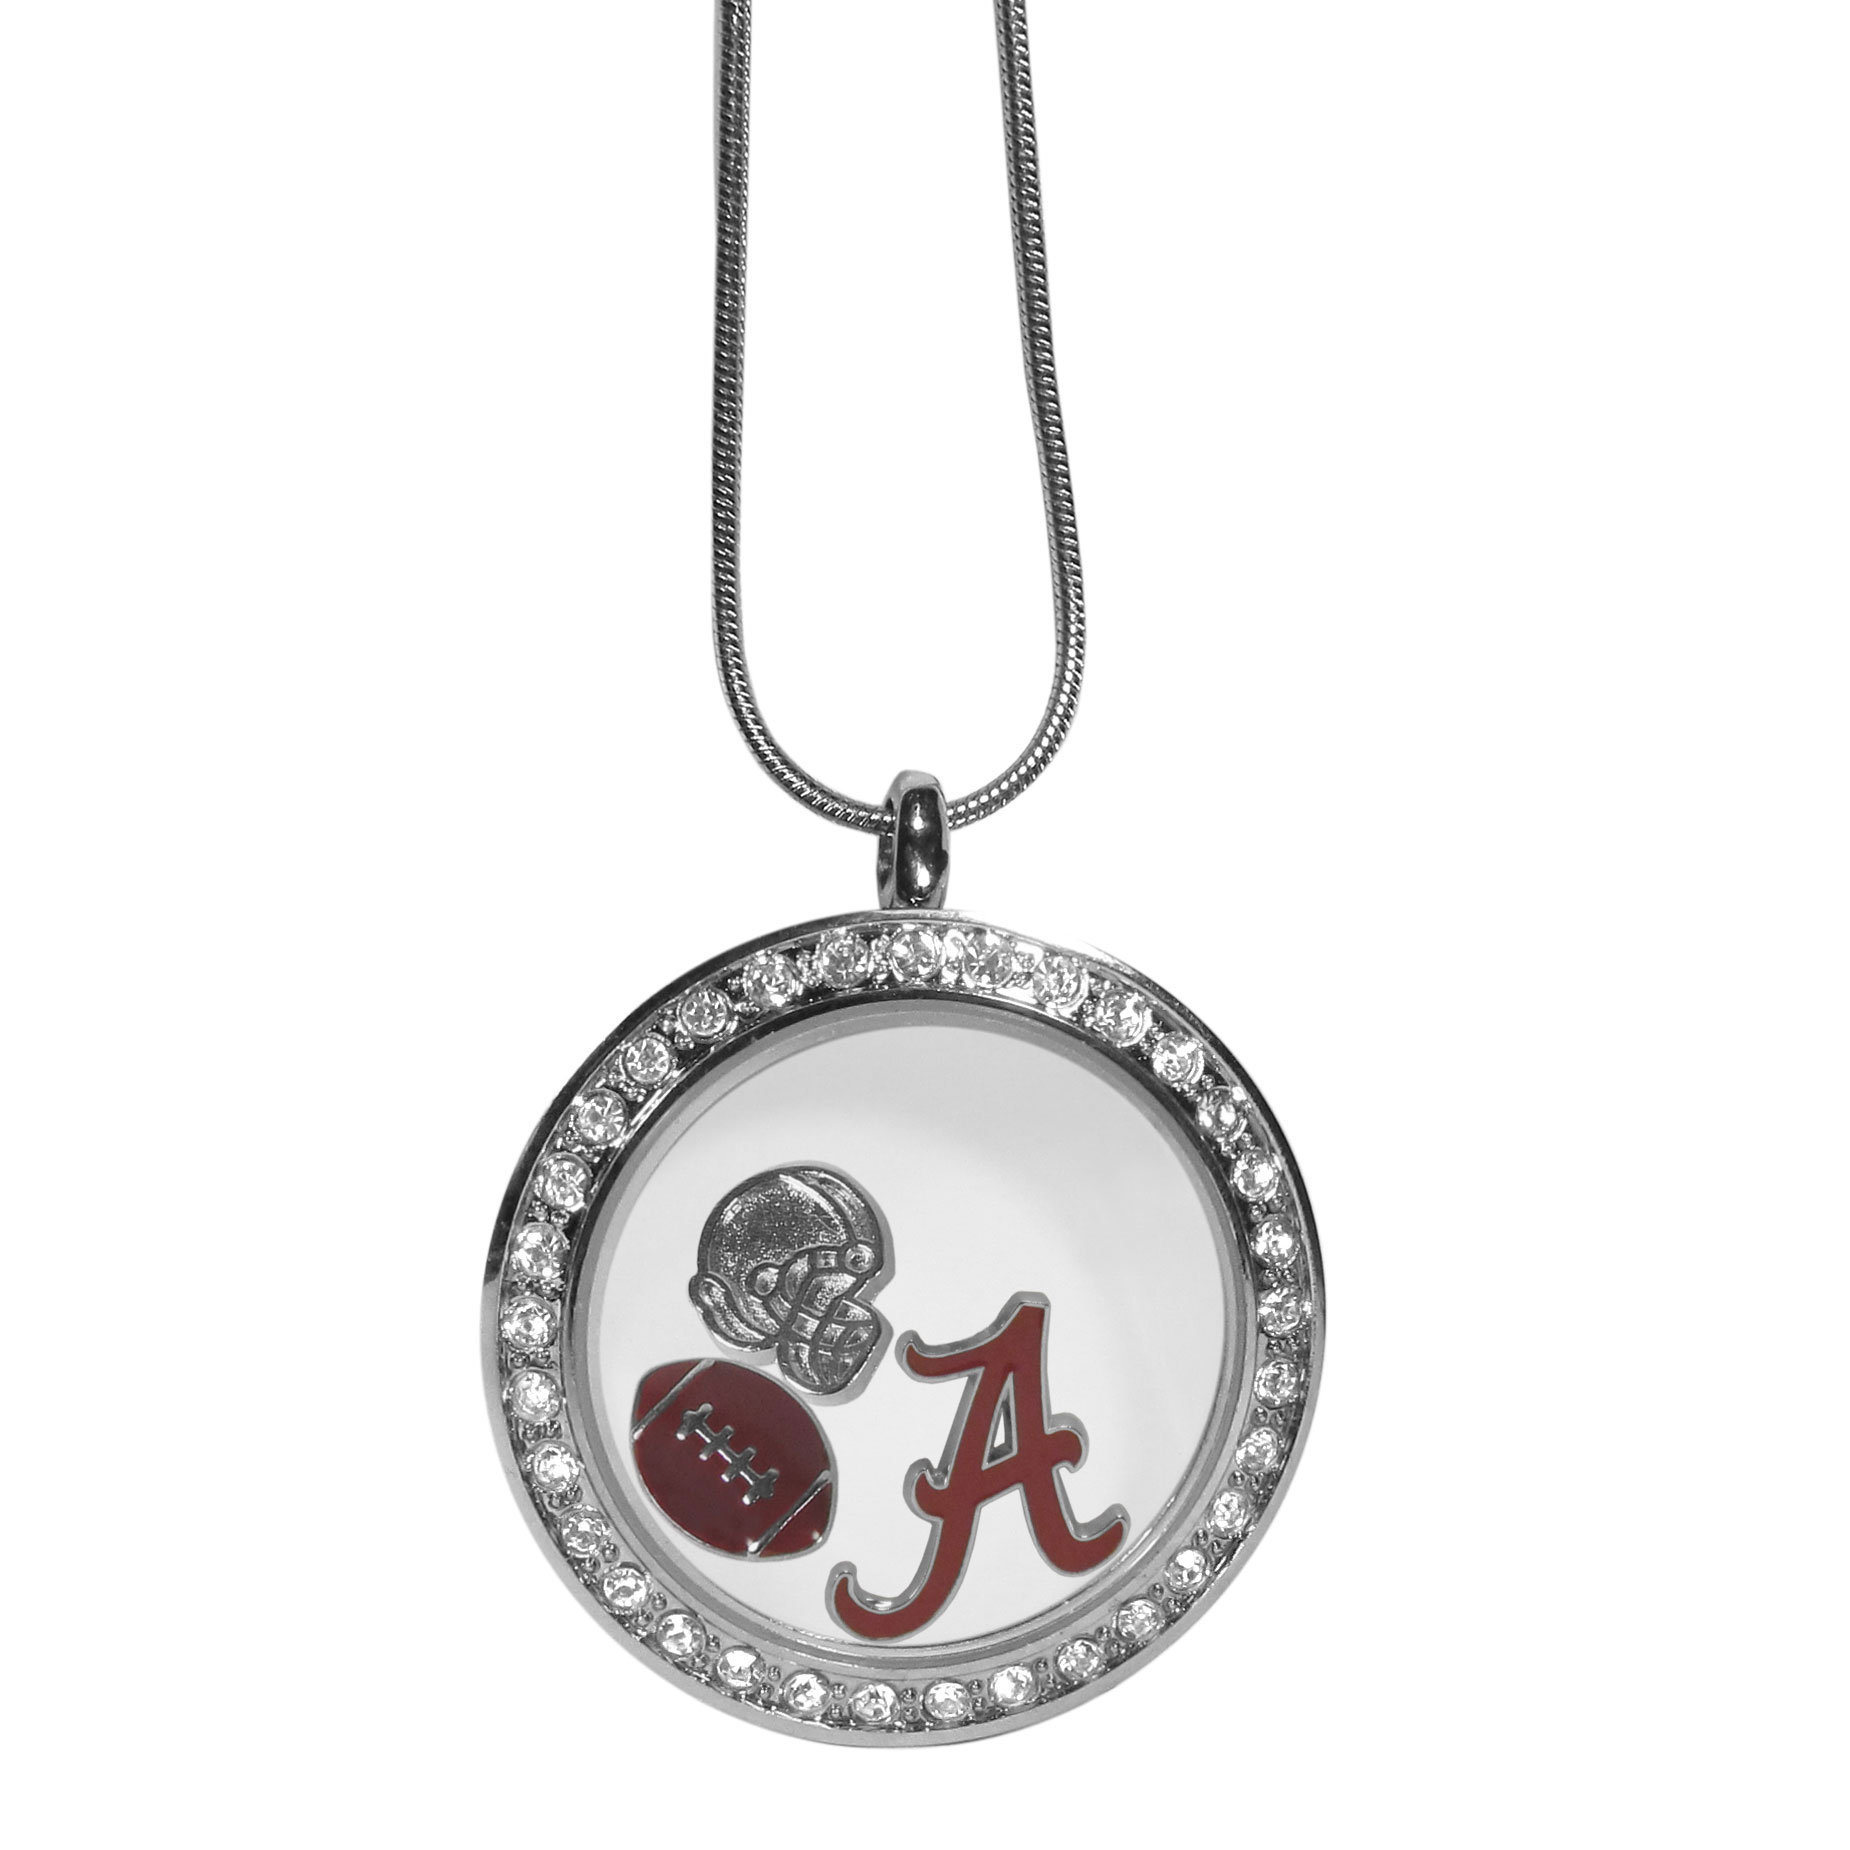 Alabama Crimson Tide Locket Necklace - We have taken the classic floating charm locket and combined with licensed sports charms to create a must have fan necklace. The necklace comes with 3 charms; 1 Alabama Crimson Tide charm, one football charm and one helmet charm. The charms float in a beautiful locket that has a strong magnetic closure with a rhinestone border. The locket comes on an 18 inch snake chain with 2 inch extender.